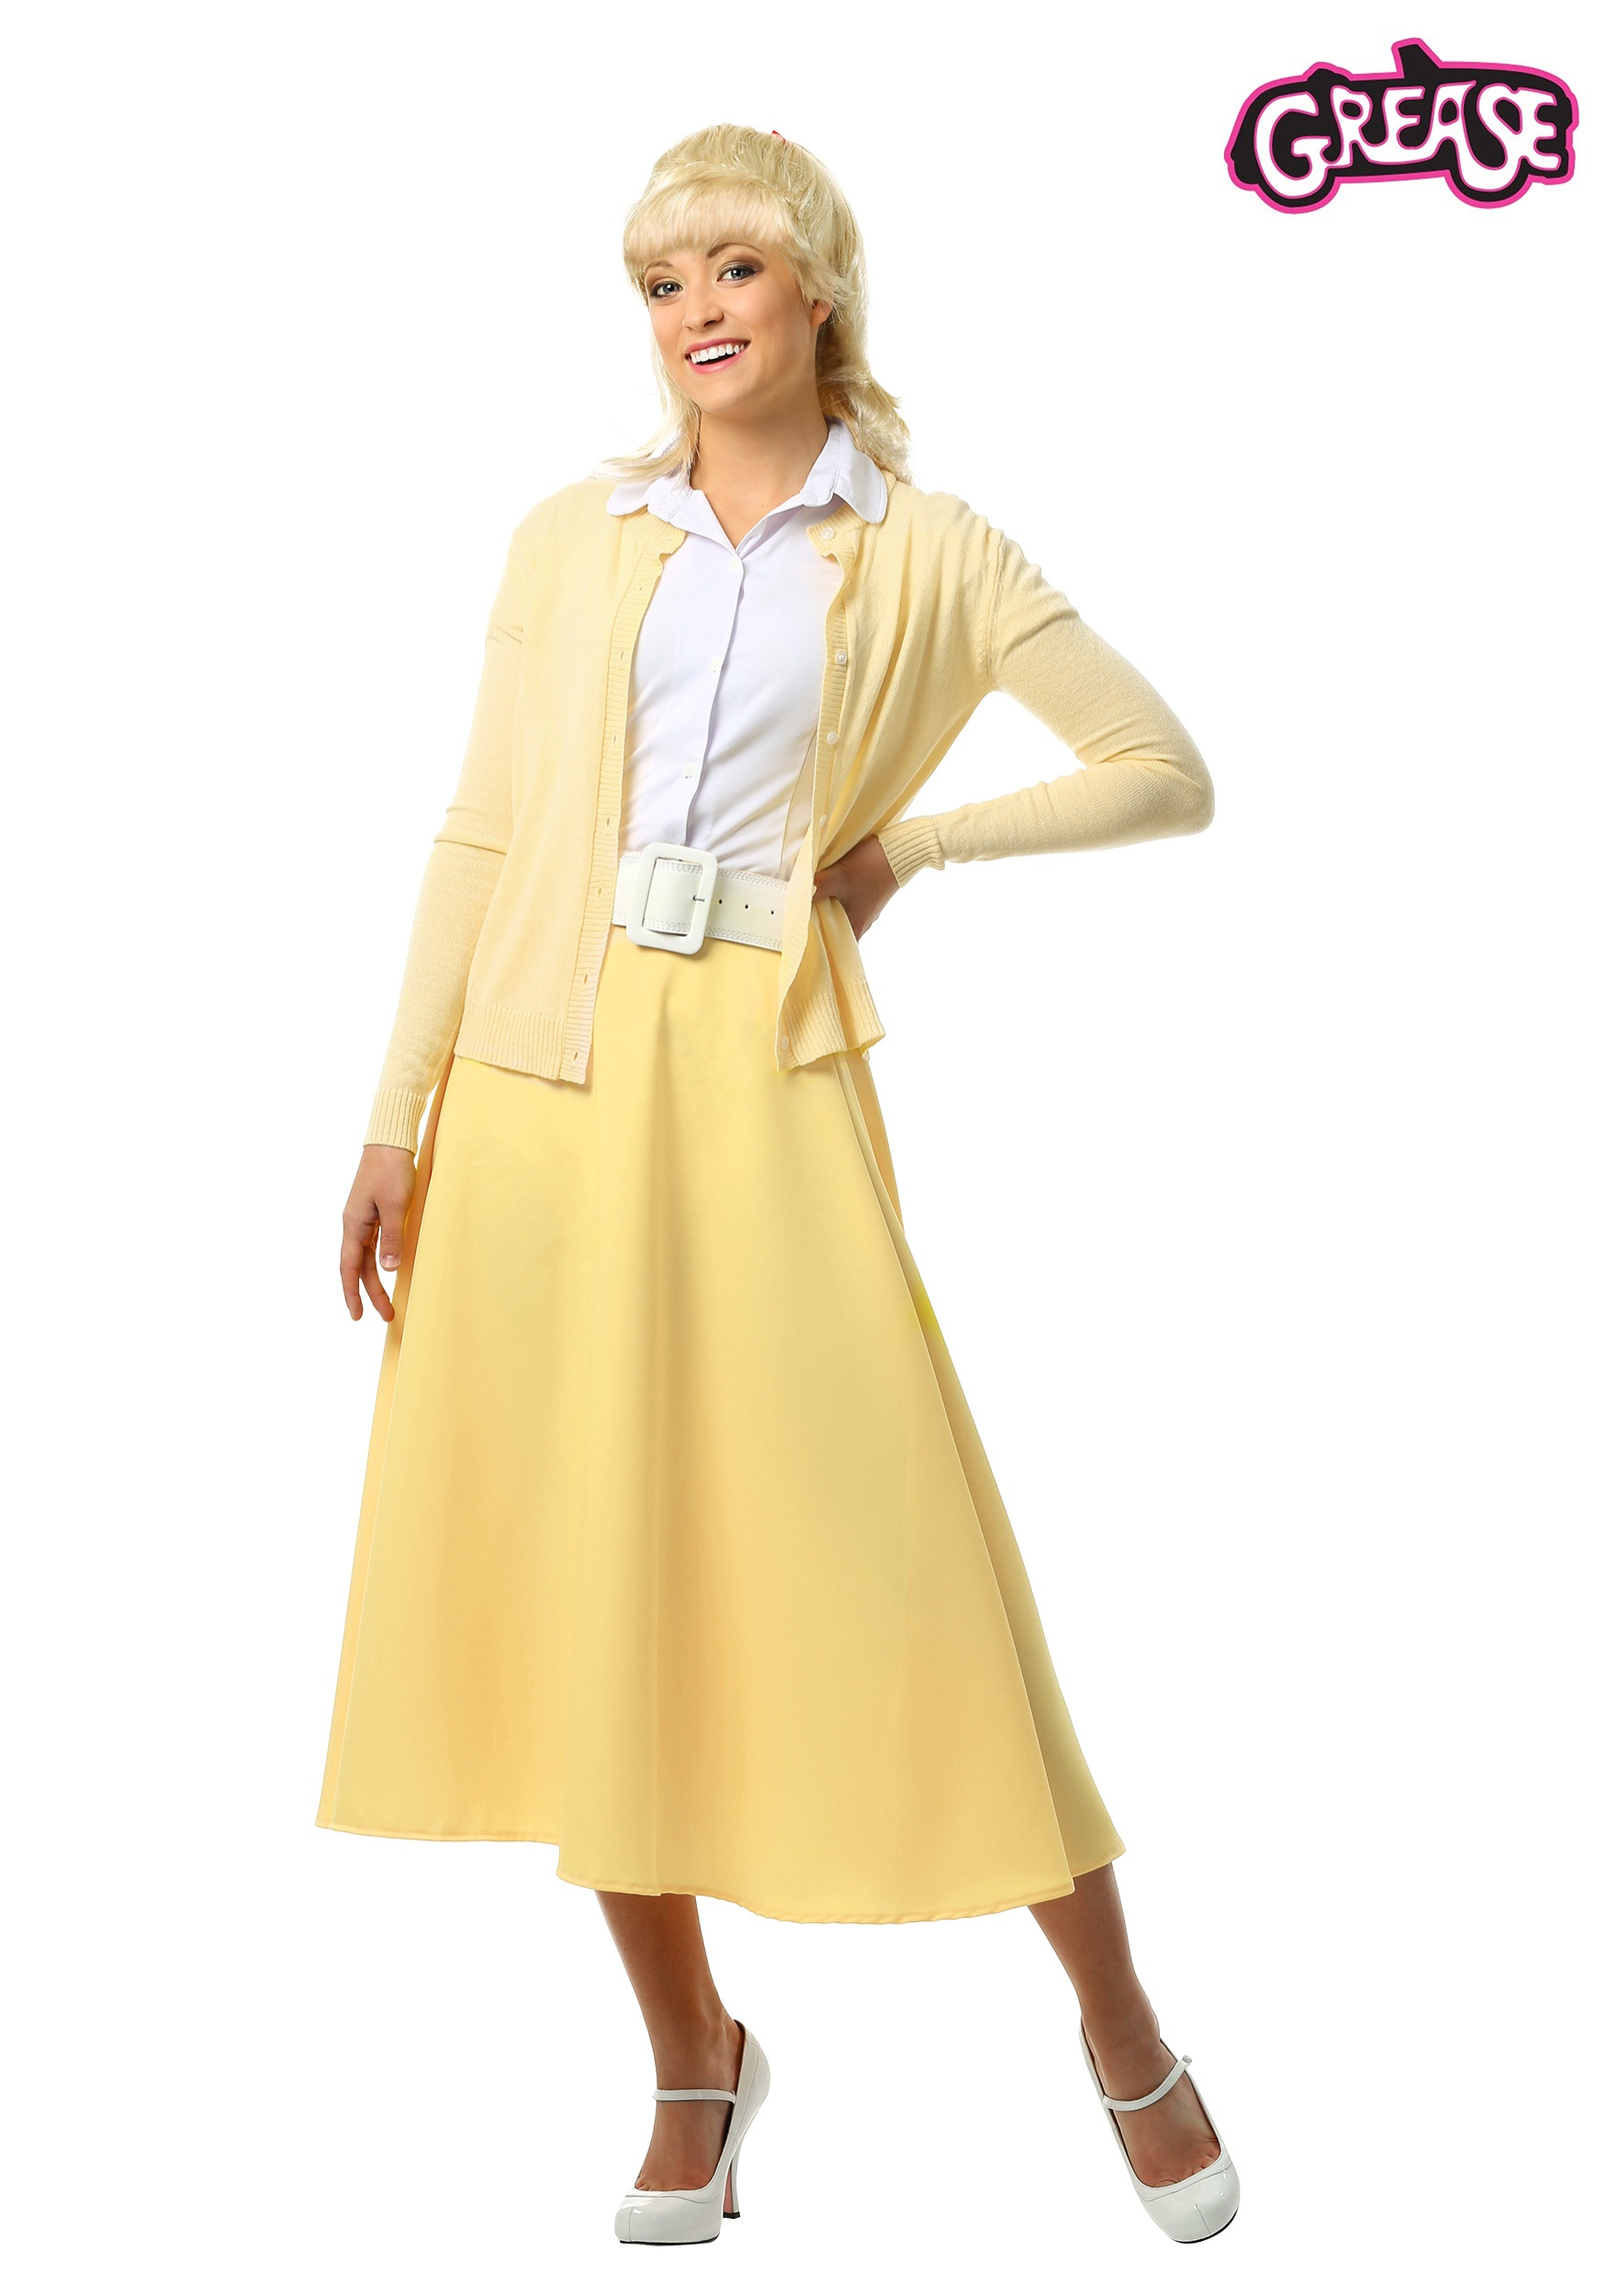 Grease Good Sandy Plus Size Costume for Women